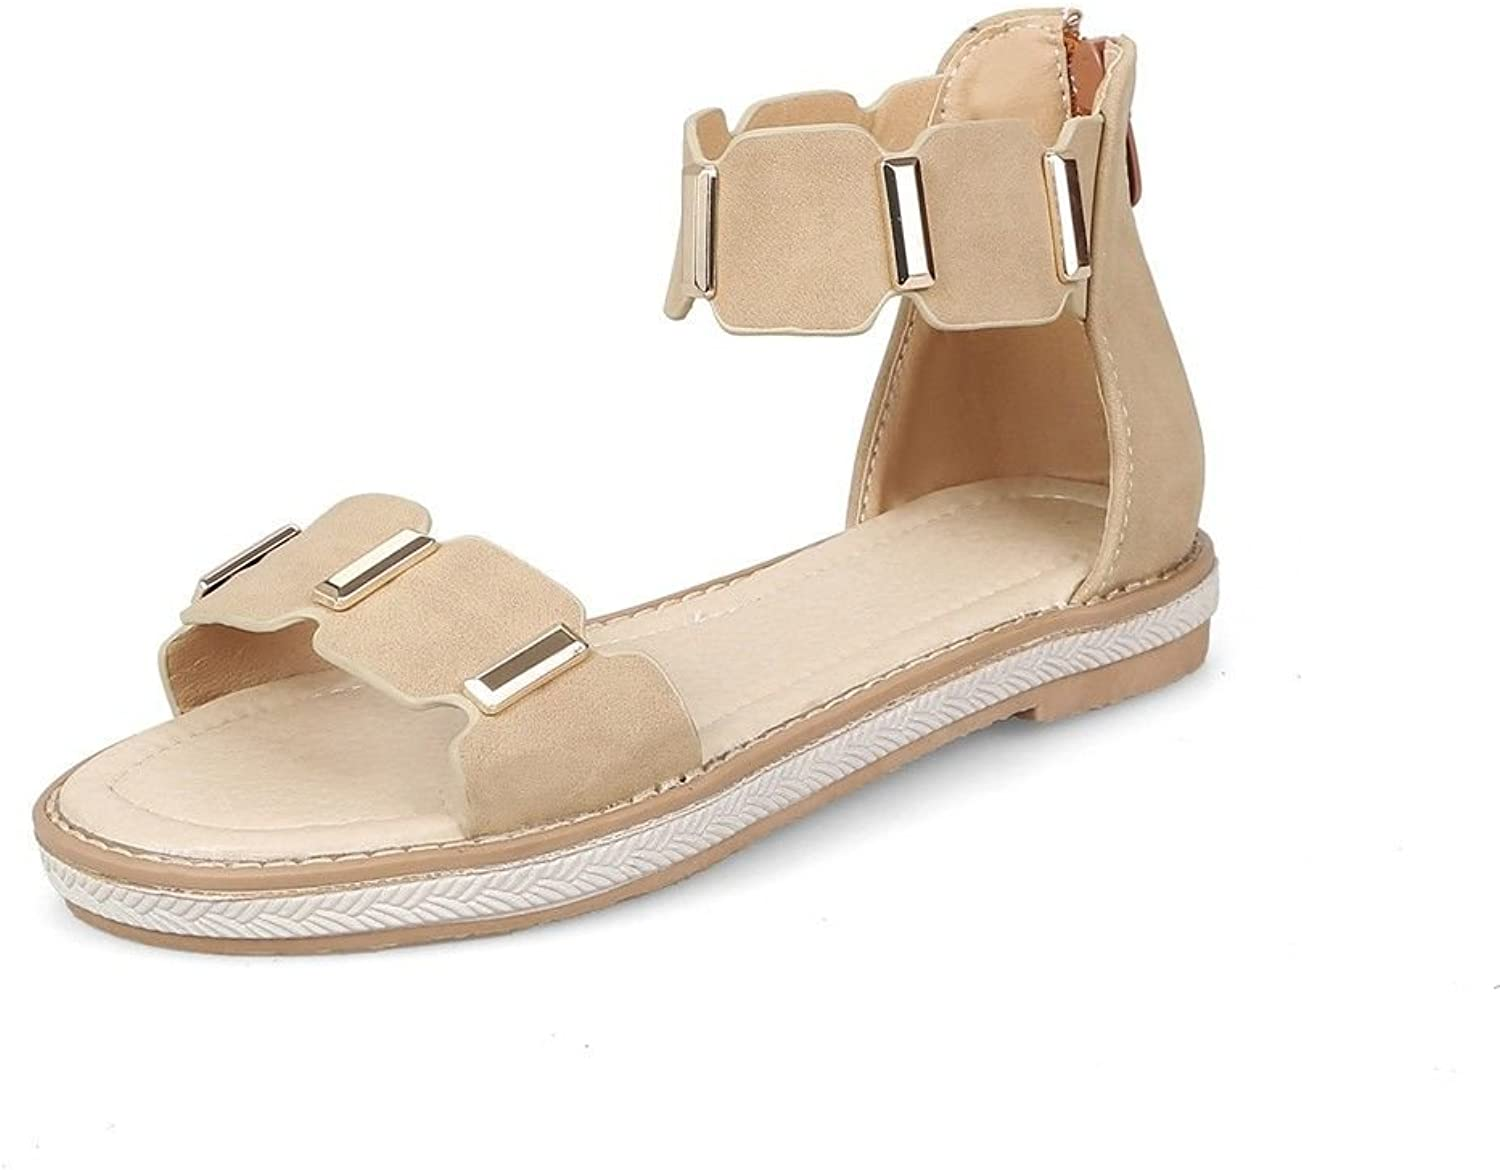 High Summer Help Round Head Package with a Flat Base Student Ladies Sandals